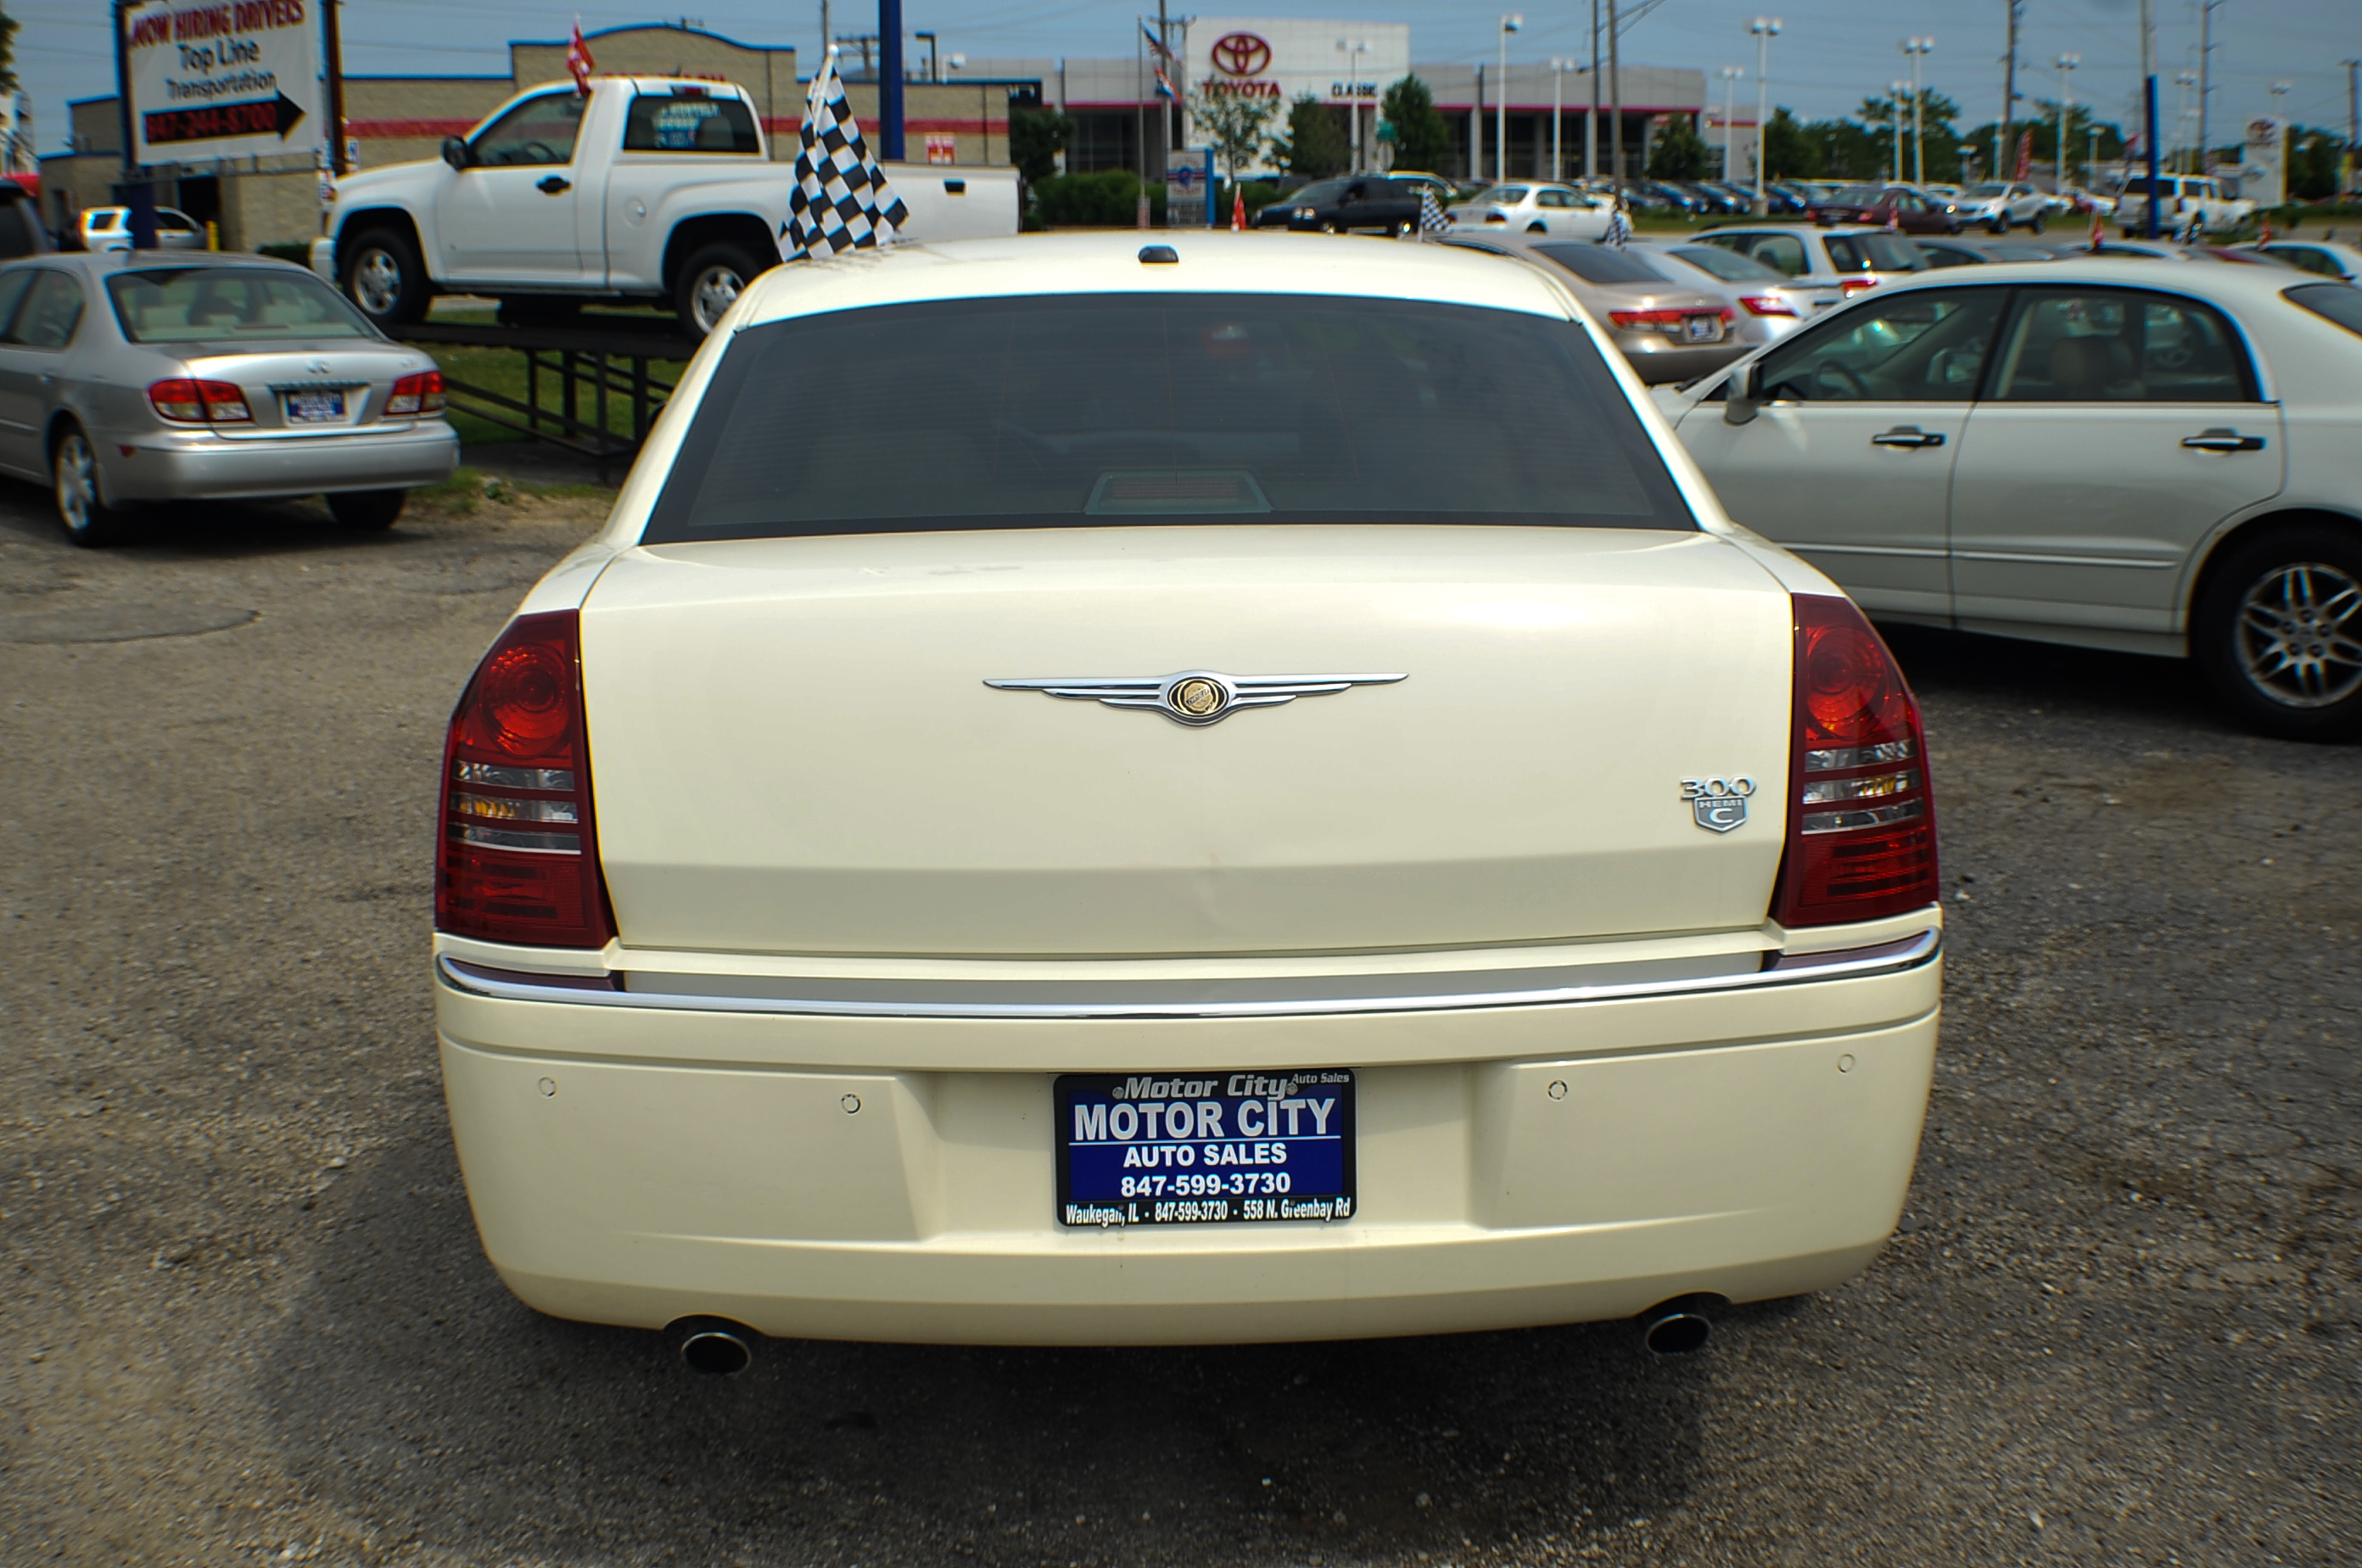 2006 Chrysler 300C Hemi Navigation White Sports Sedan Used Car Sale Beach Park